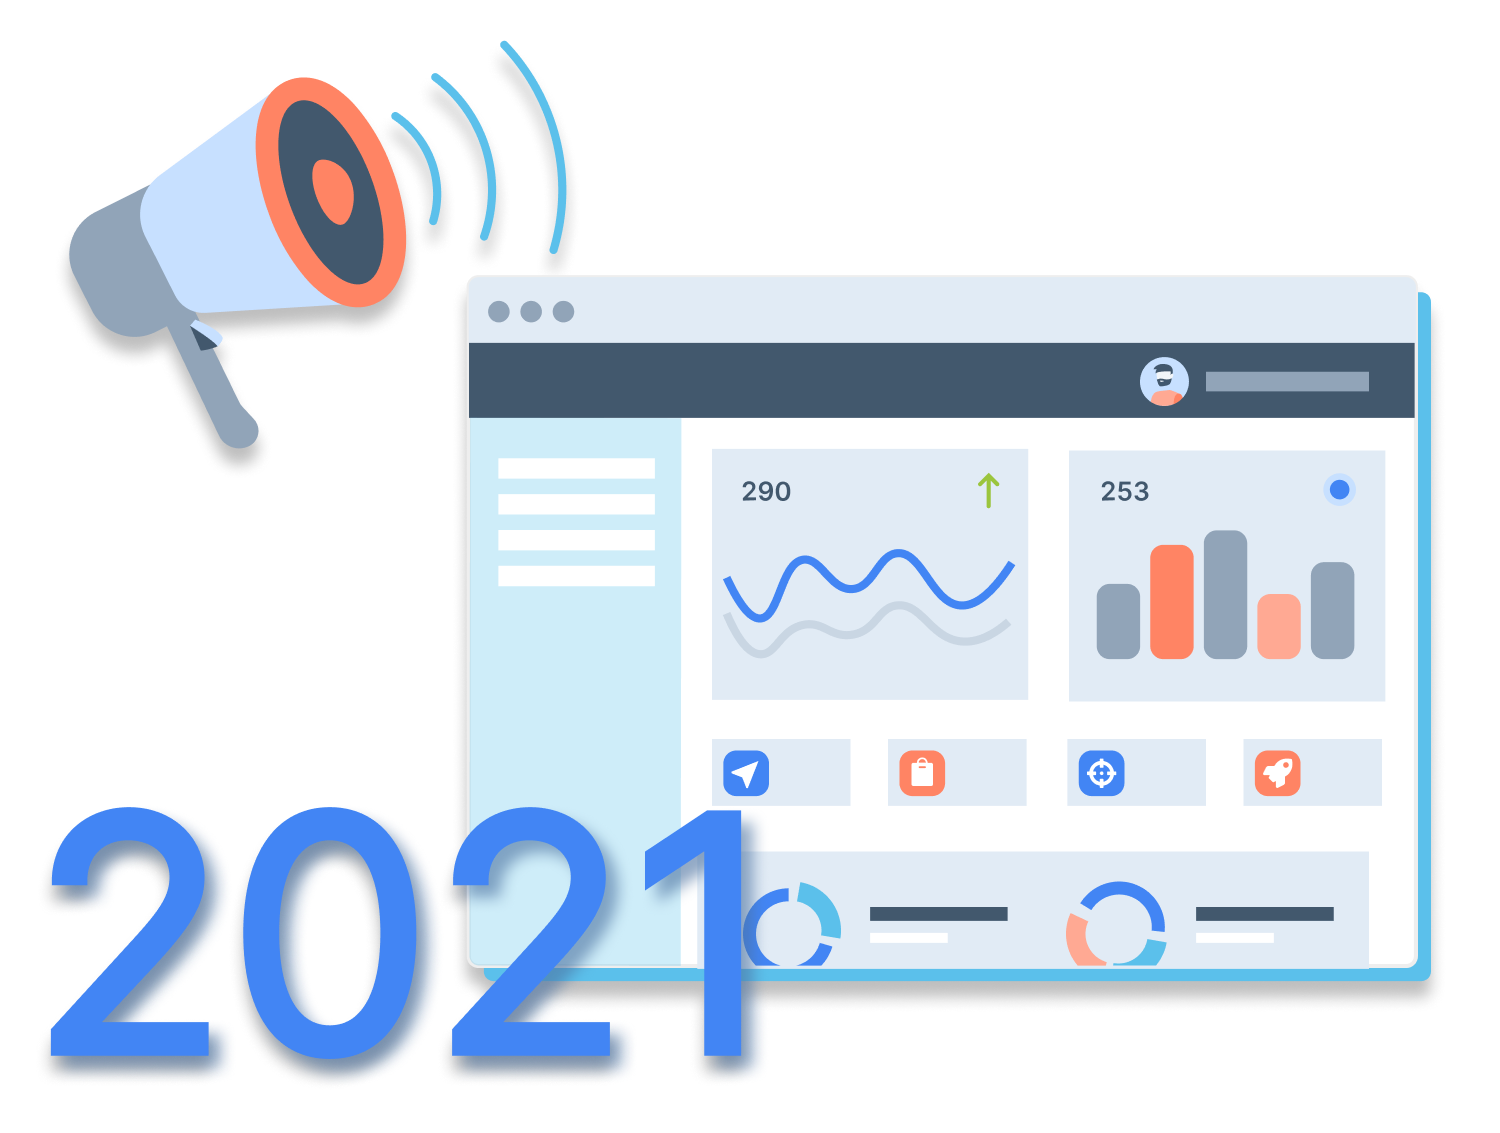 Charts and data, year 2021, and megaphone